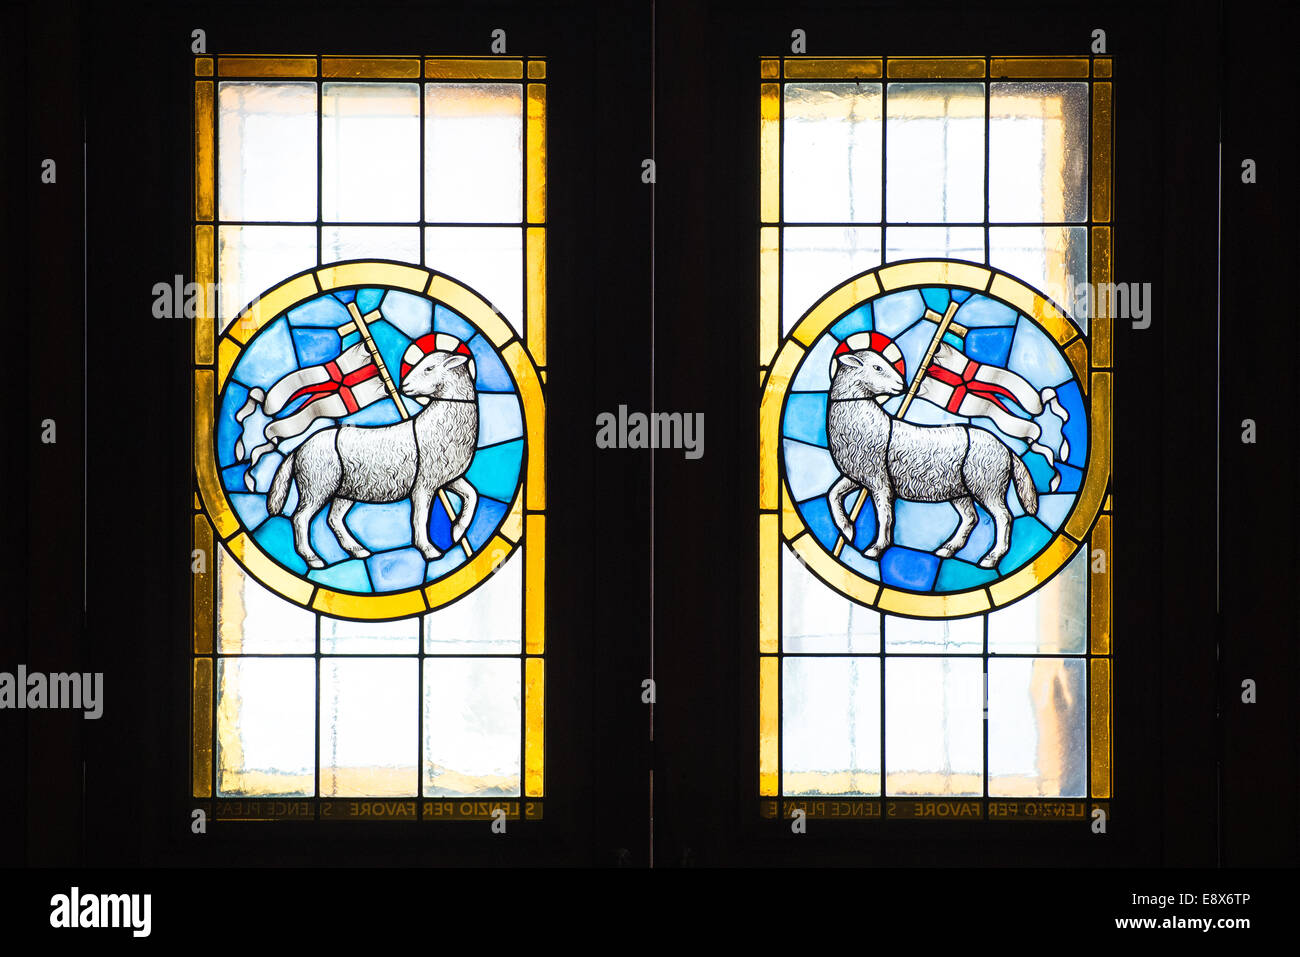 FLORENCE, ITALY - SEPTEMBER 15, 2014: Stained glass window of the Basilica di Santa Maria del Fiore, Florence, Italy Stock Photo